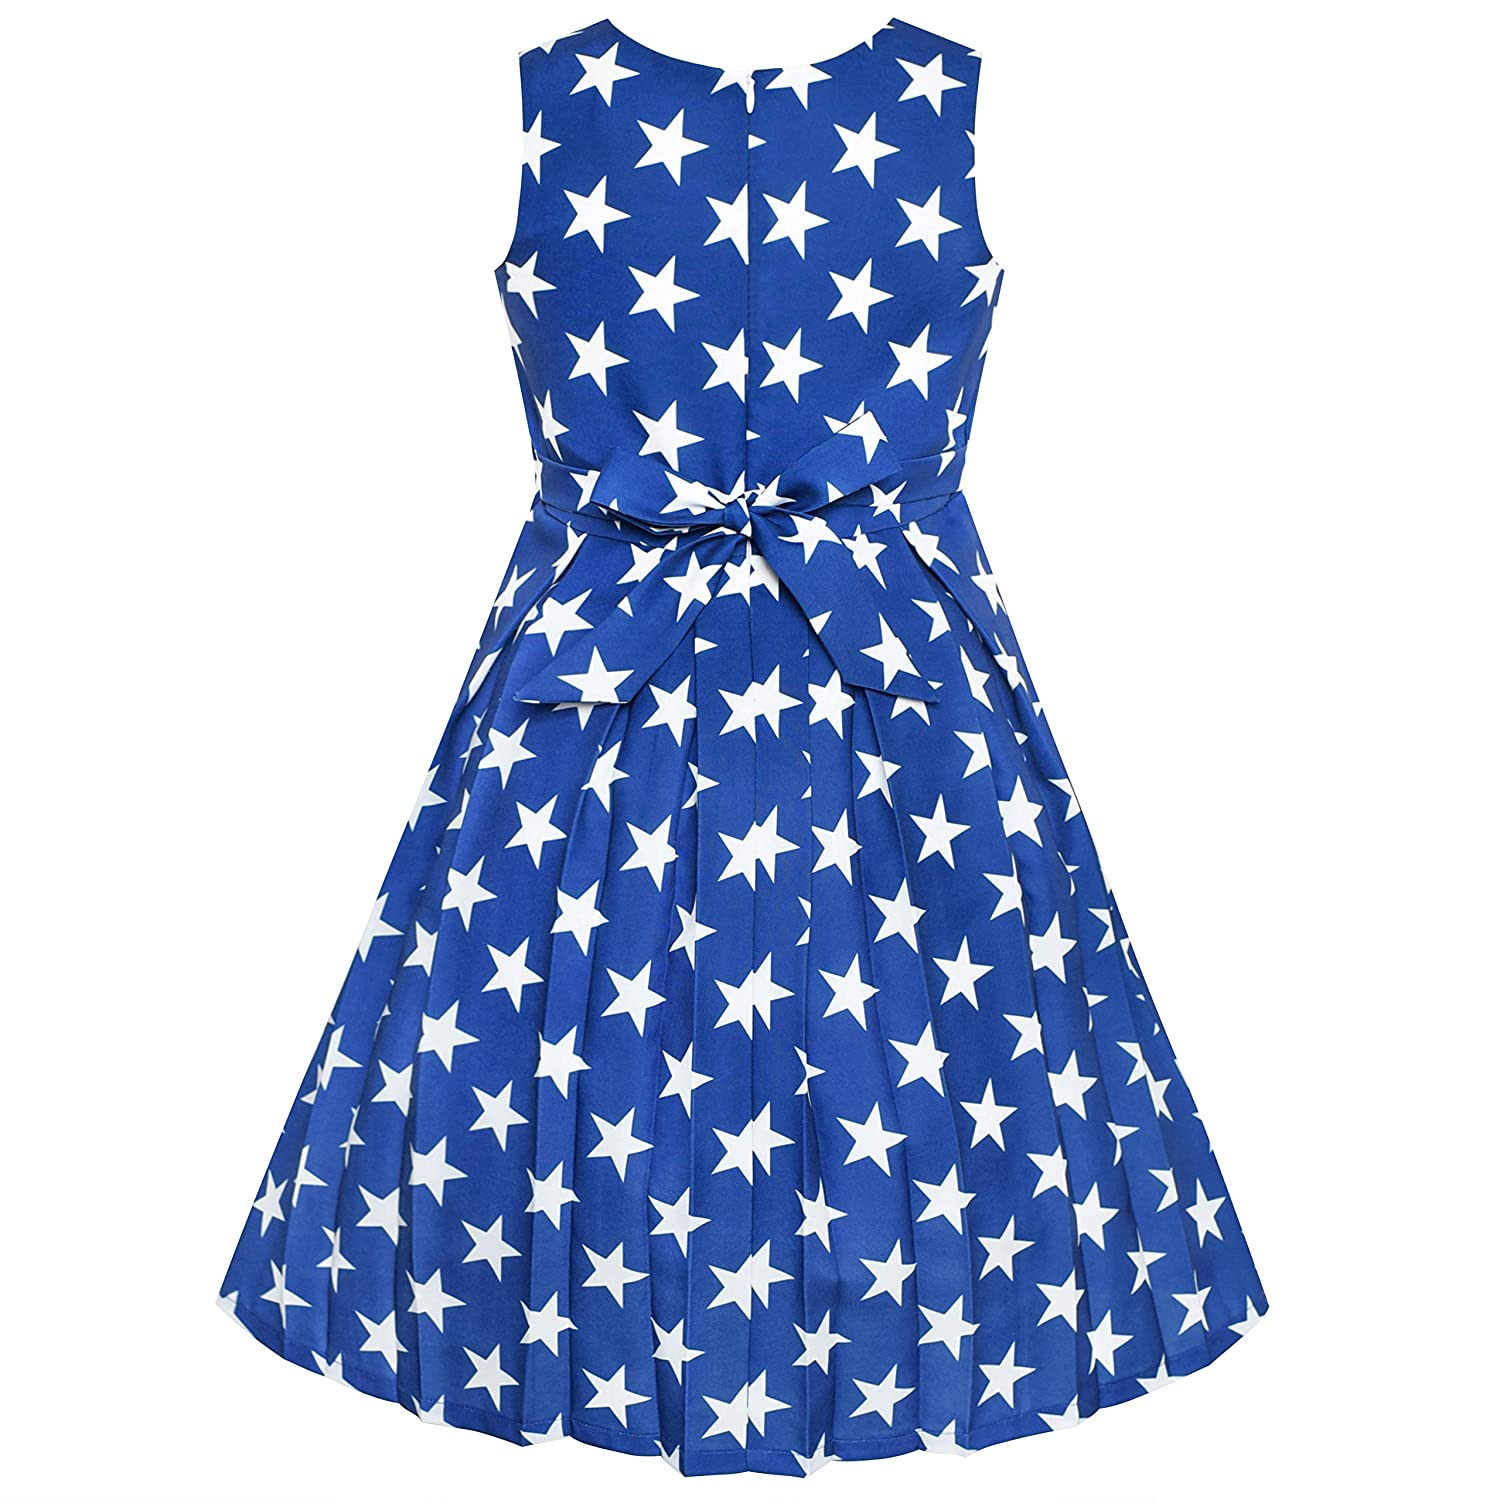 a087736f0b Amazon.com: Sunny Fashion Girls Dress Color Block Contrast Bow Tie Everyday  Party Size 4-14: Clothing